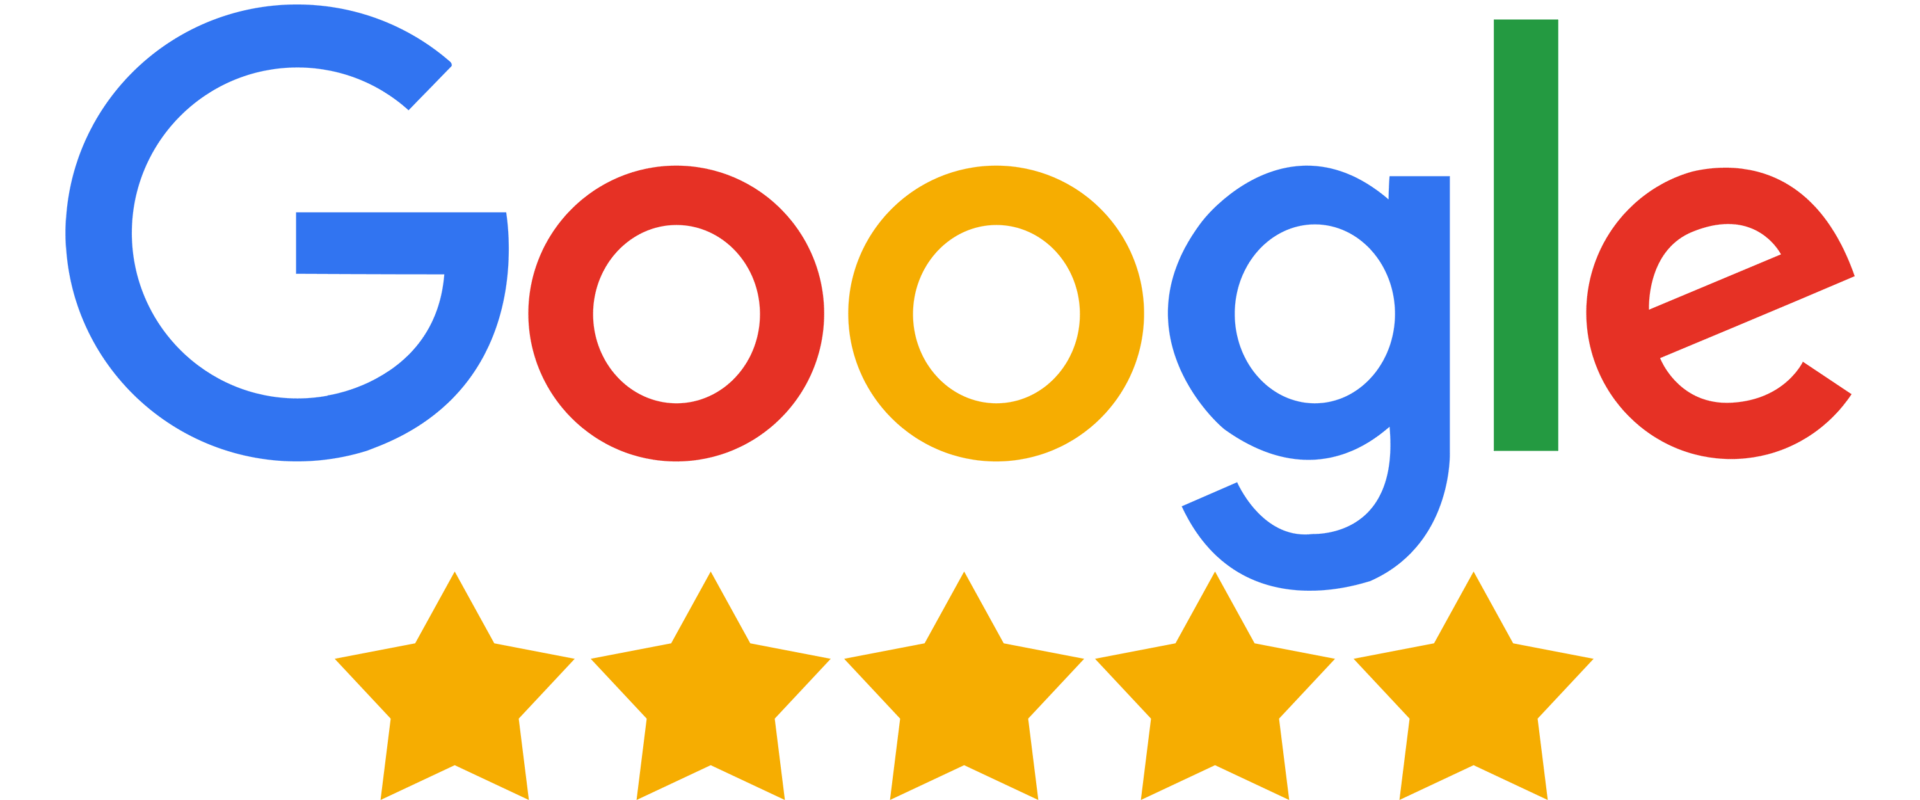 5-star-reviews-png-5